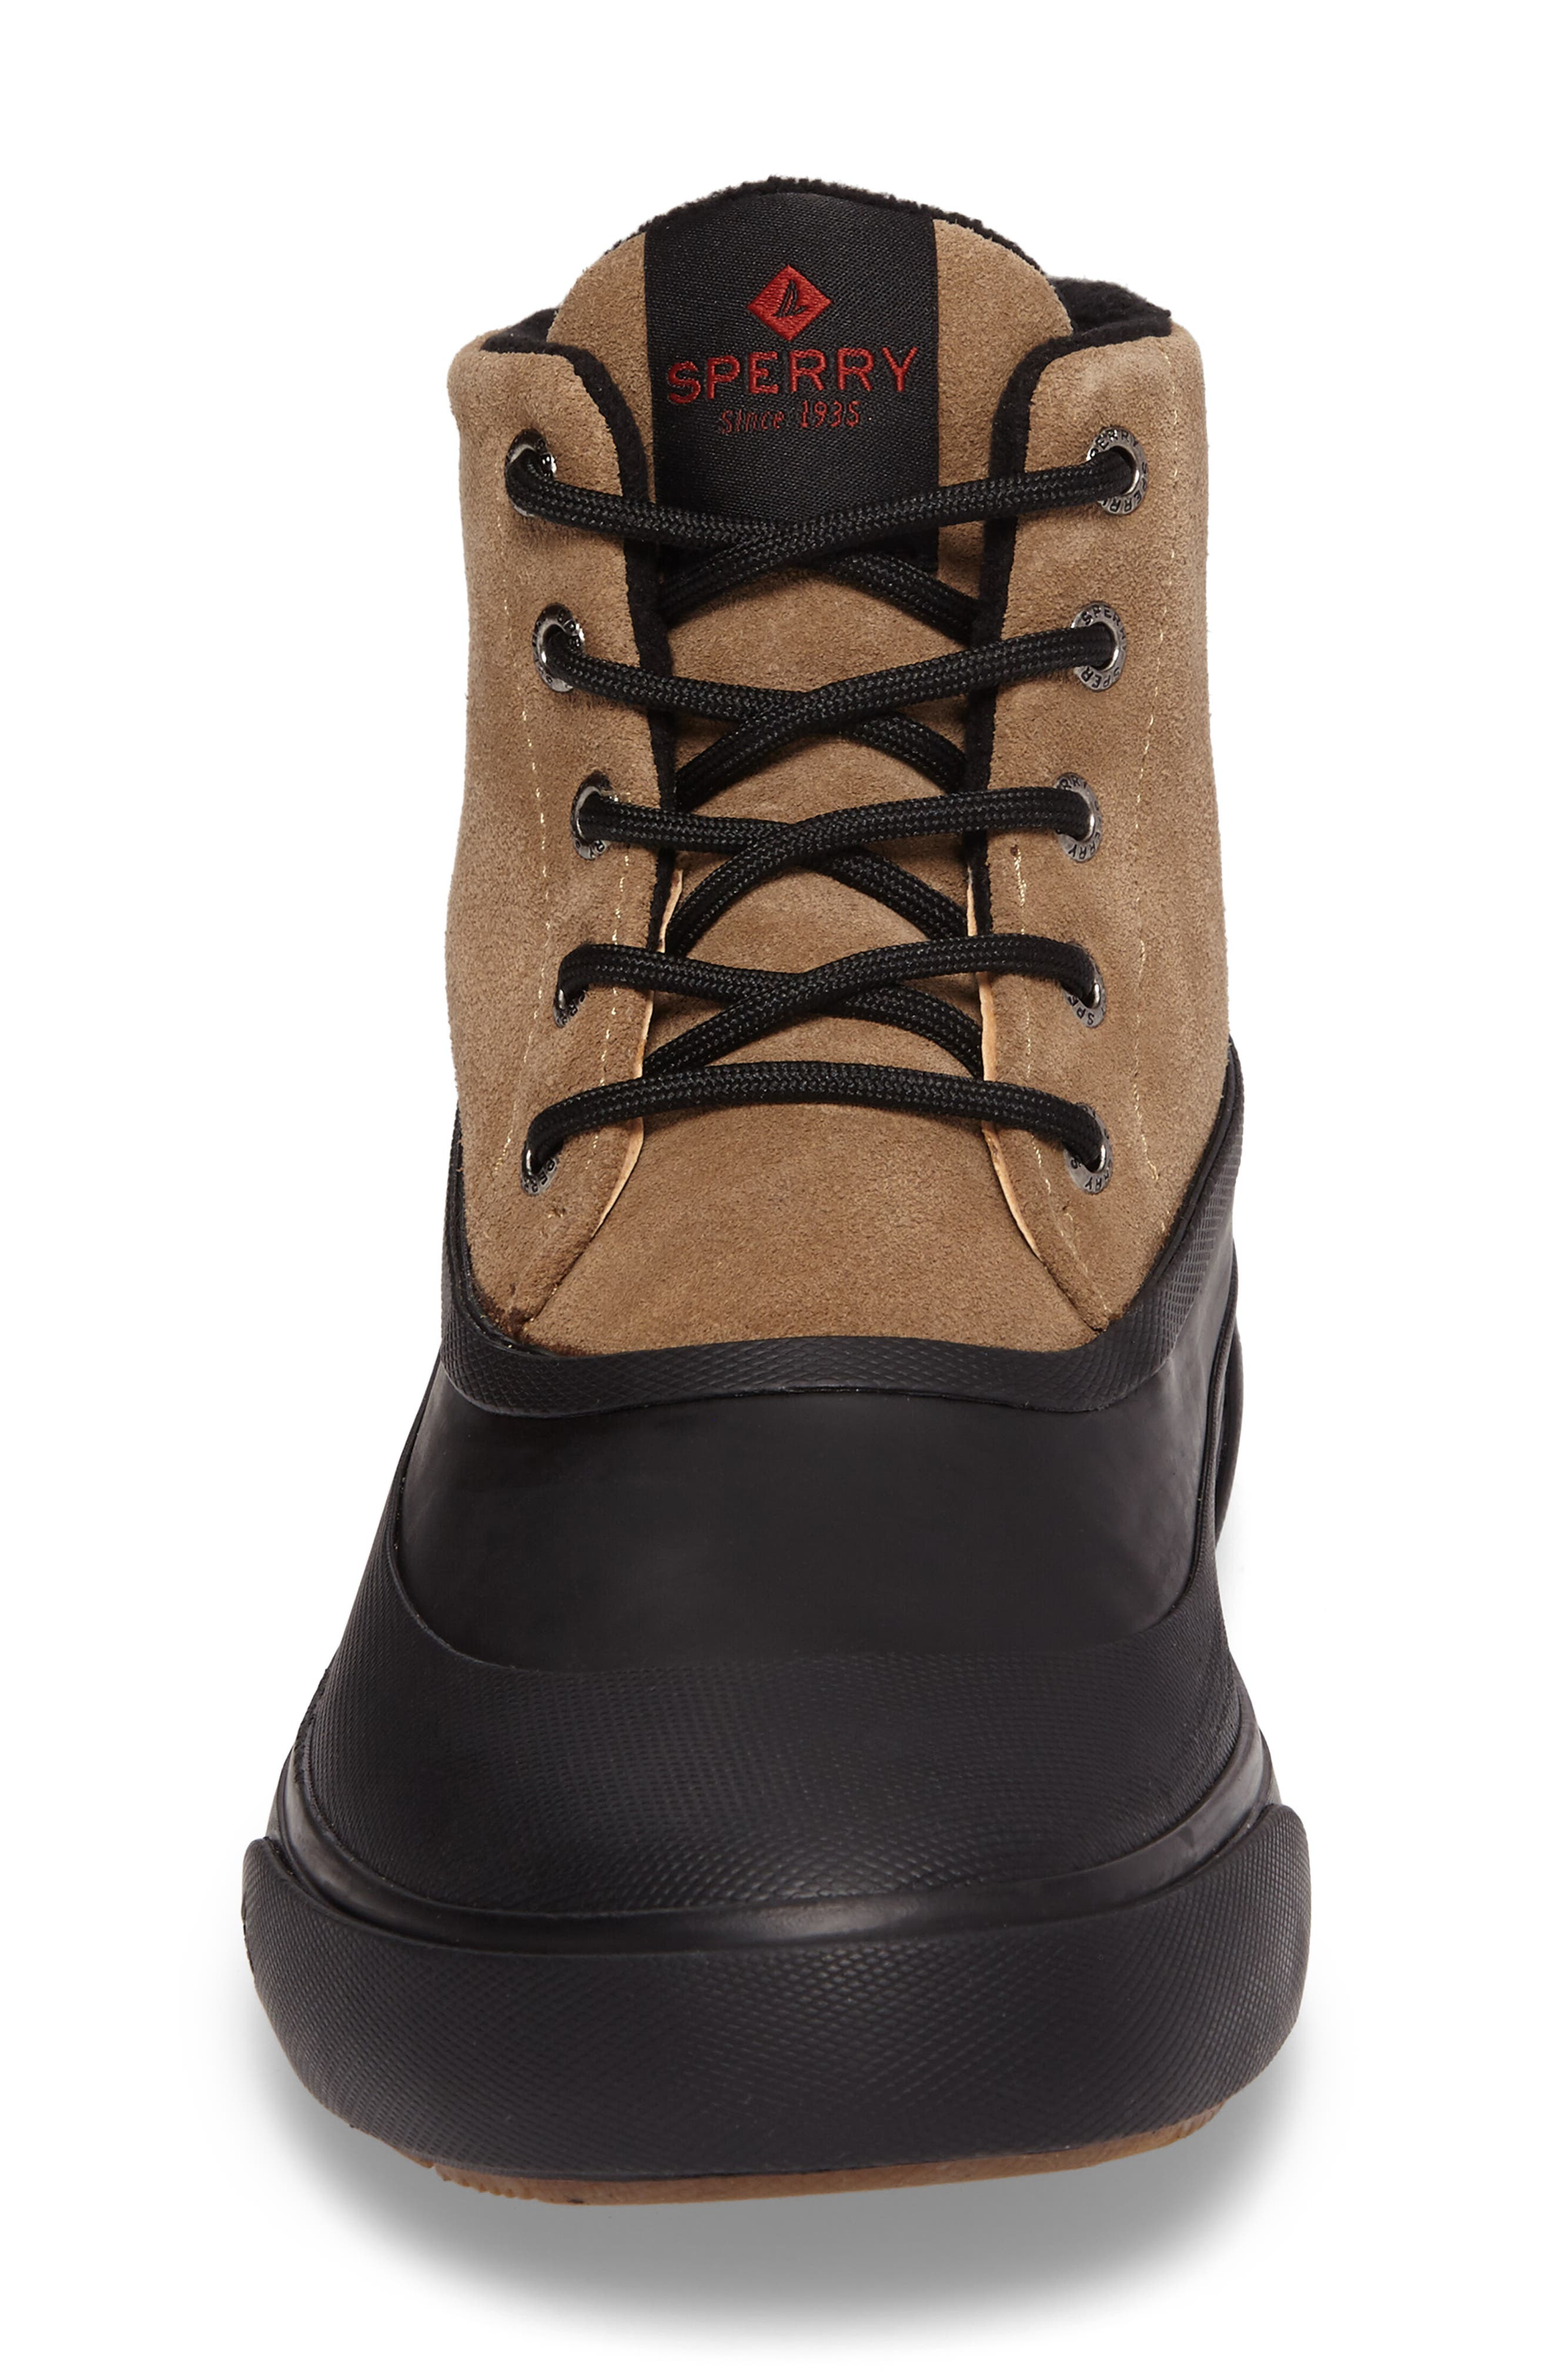 Cutwater Boot,                             Alternate thumbnail 4, color,                             Noce/ Black